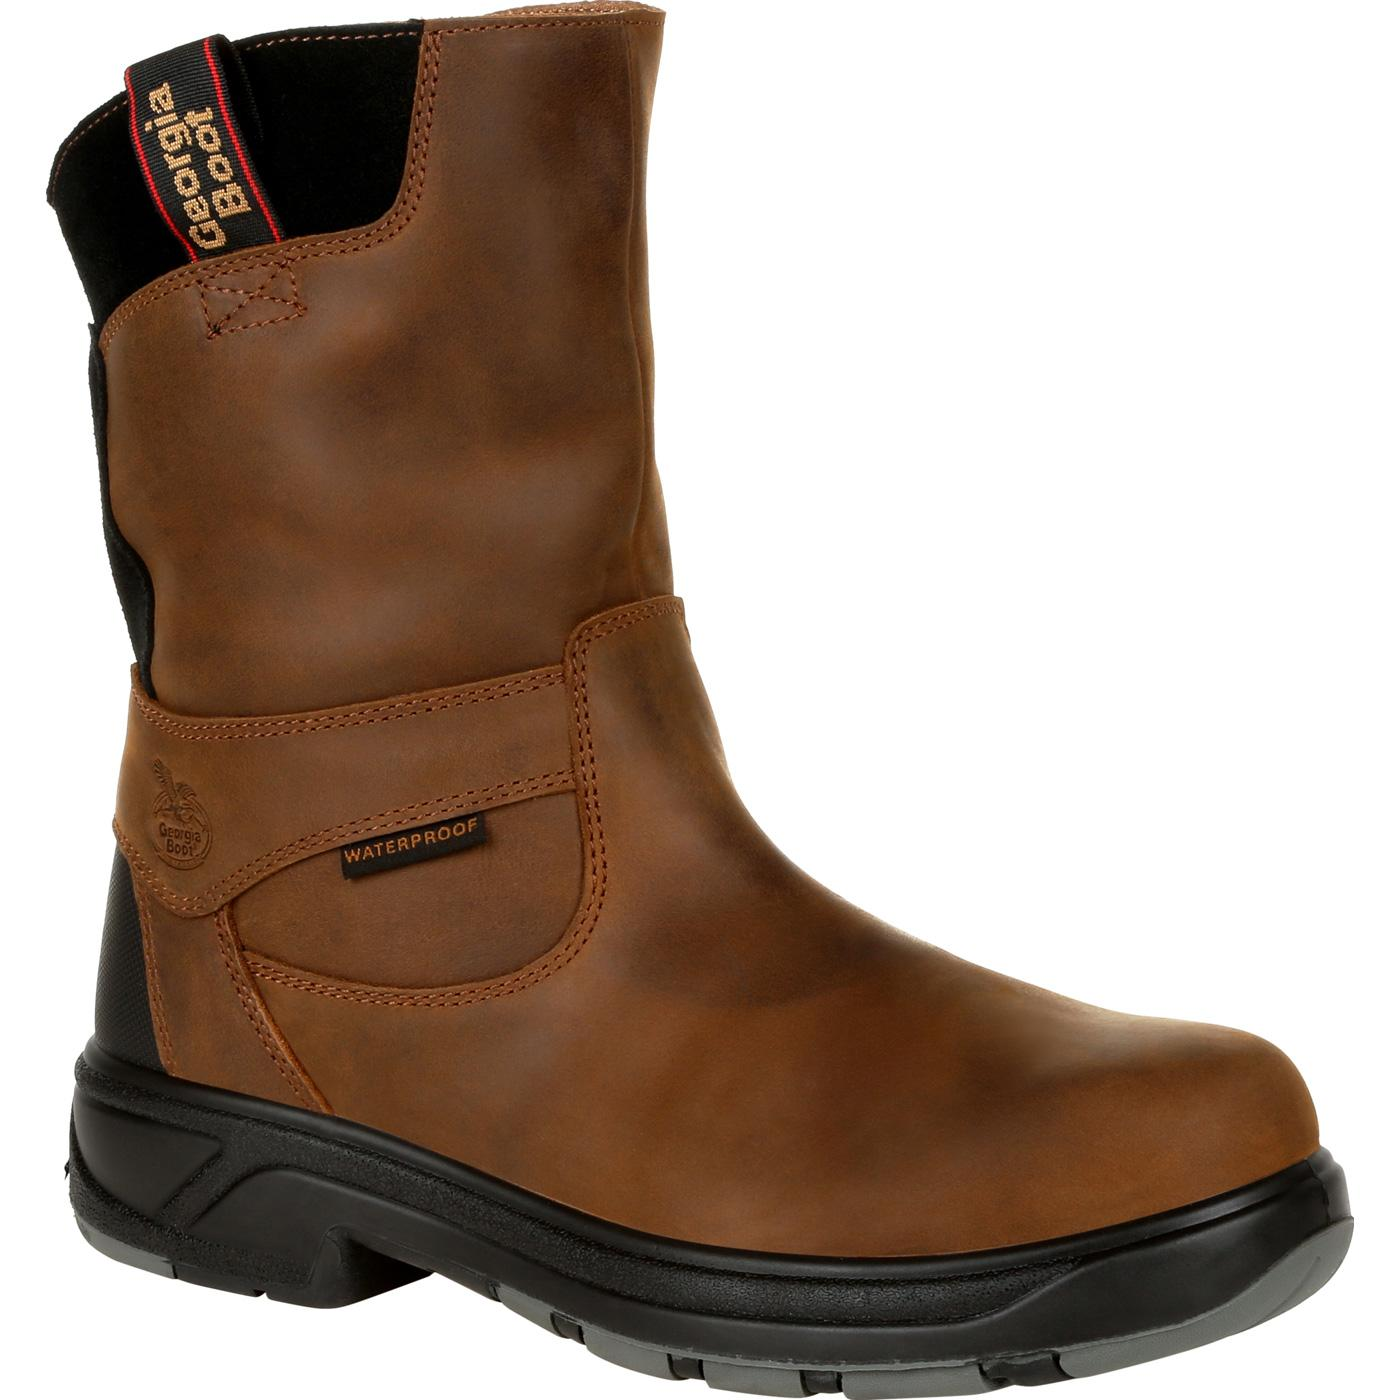 929bc9d1771 Georgia FLXpoint Waterproof Composite Toe Work Boots